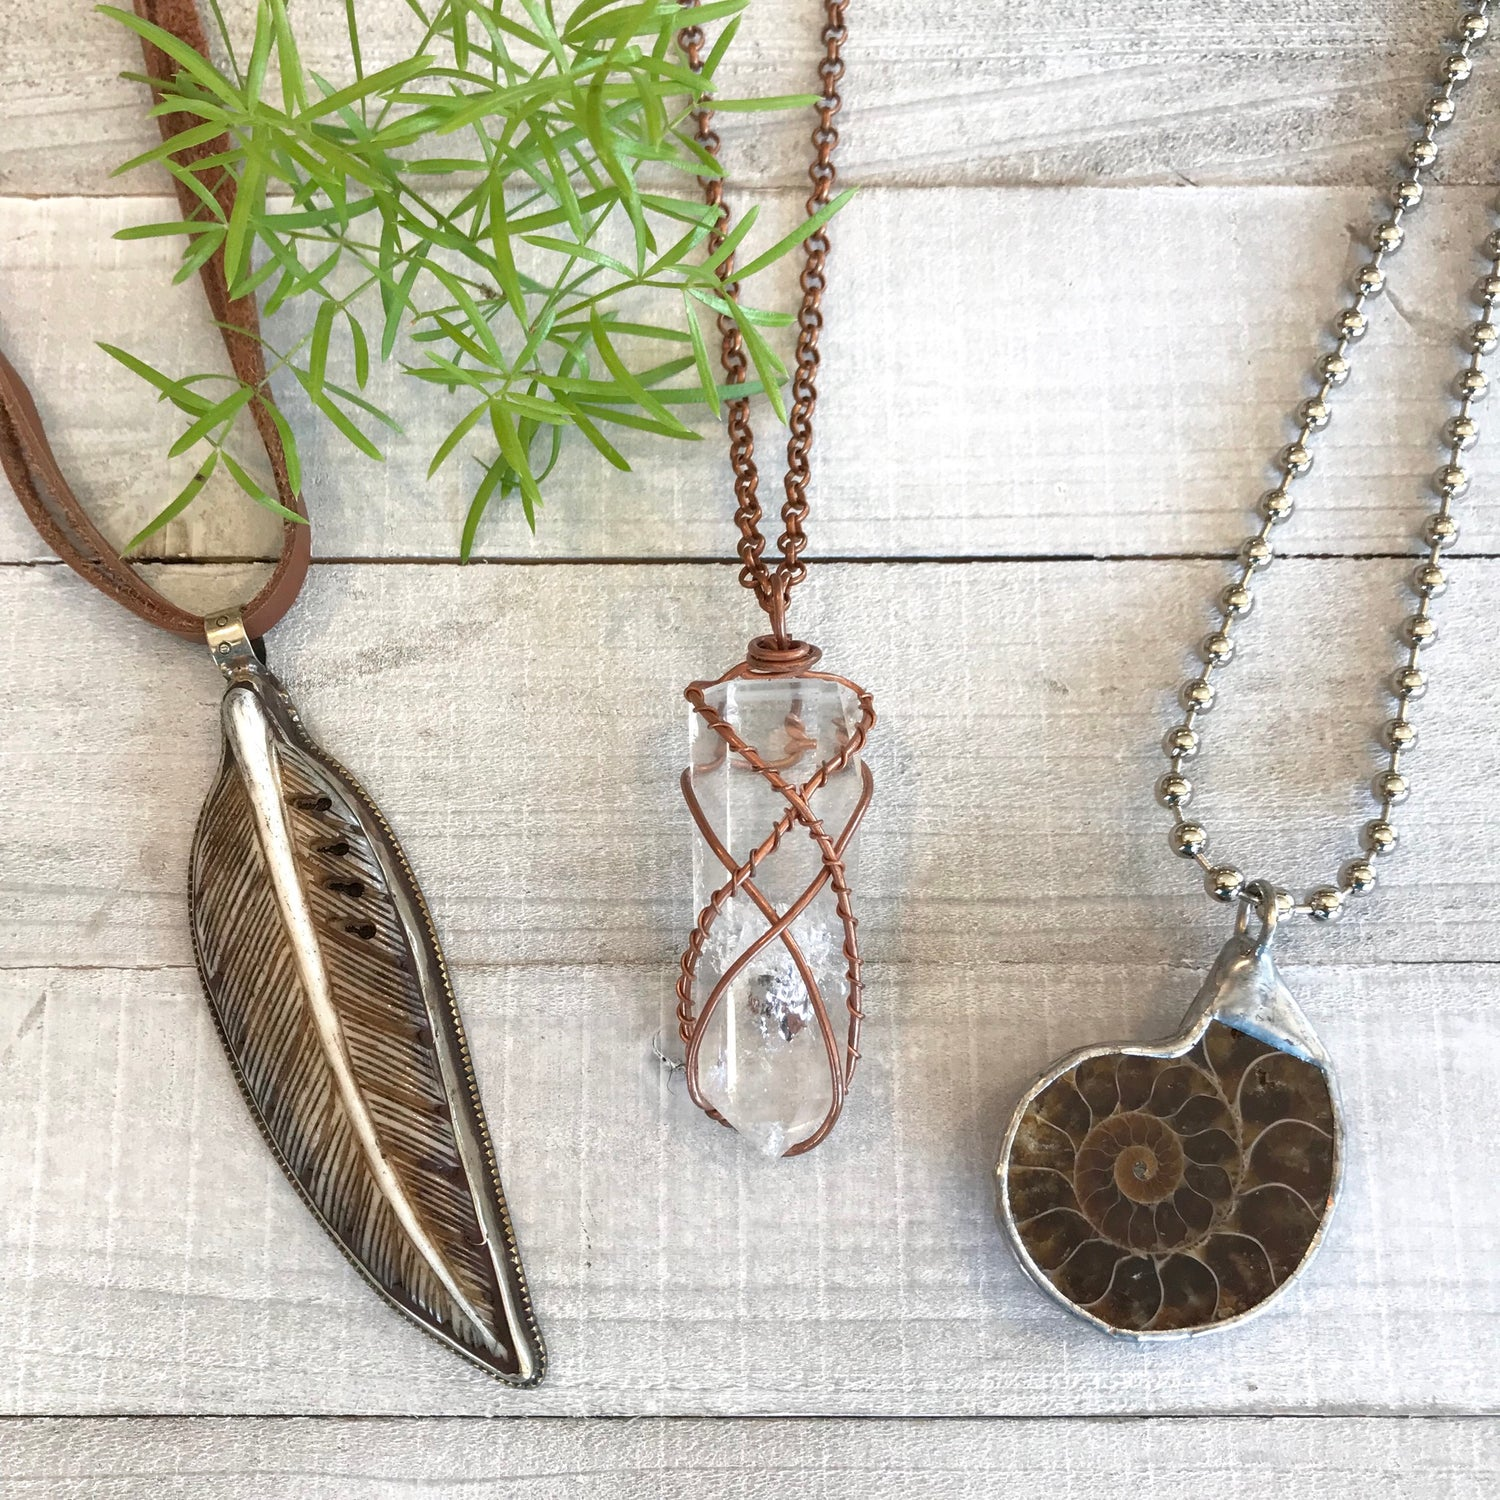 Organic Necklaces